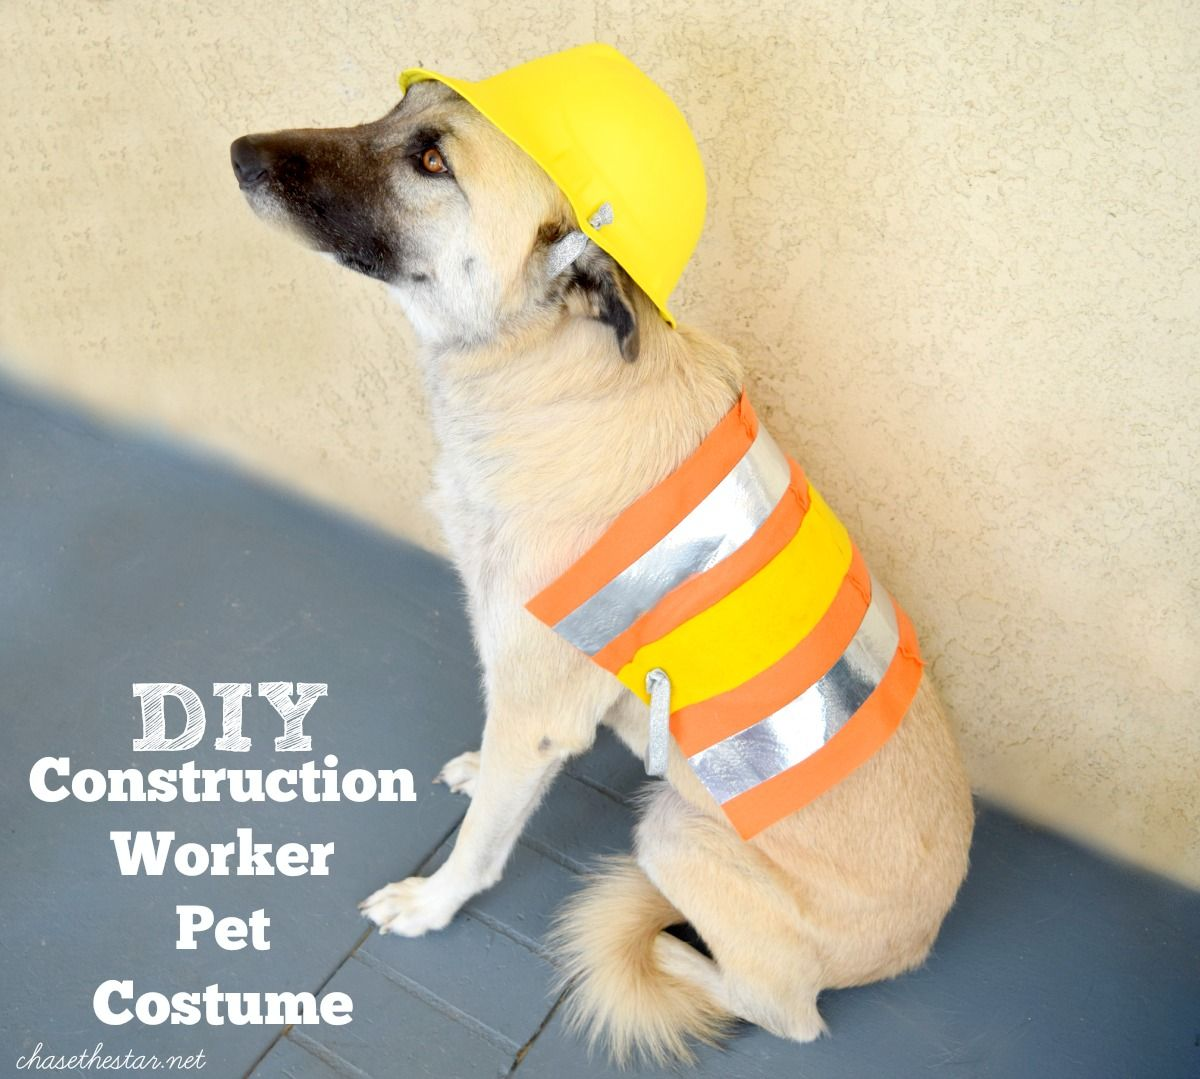 Diy Pet Costume Pet Costumes Diy Pet Costumes Pet Costumes For Dogs